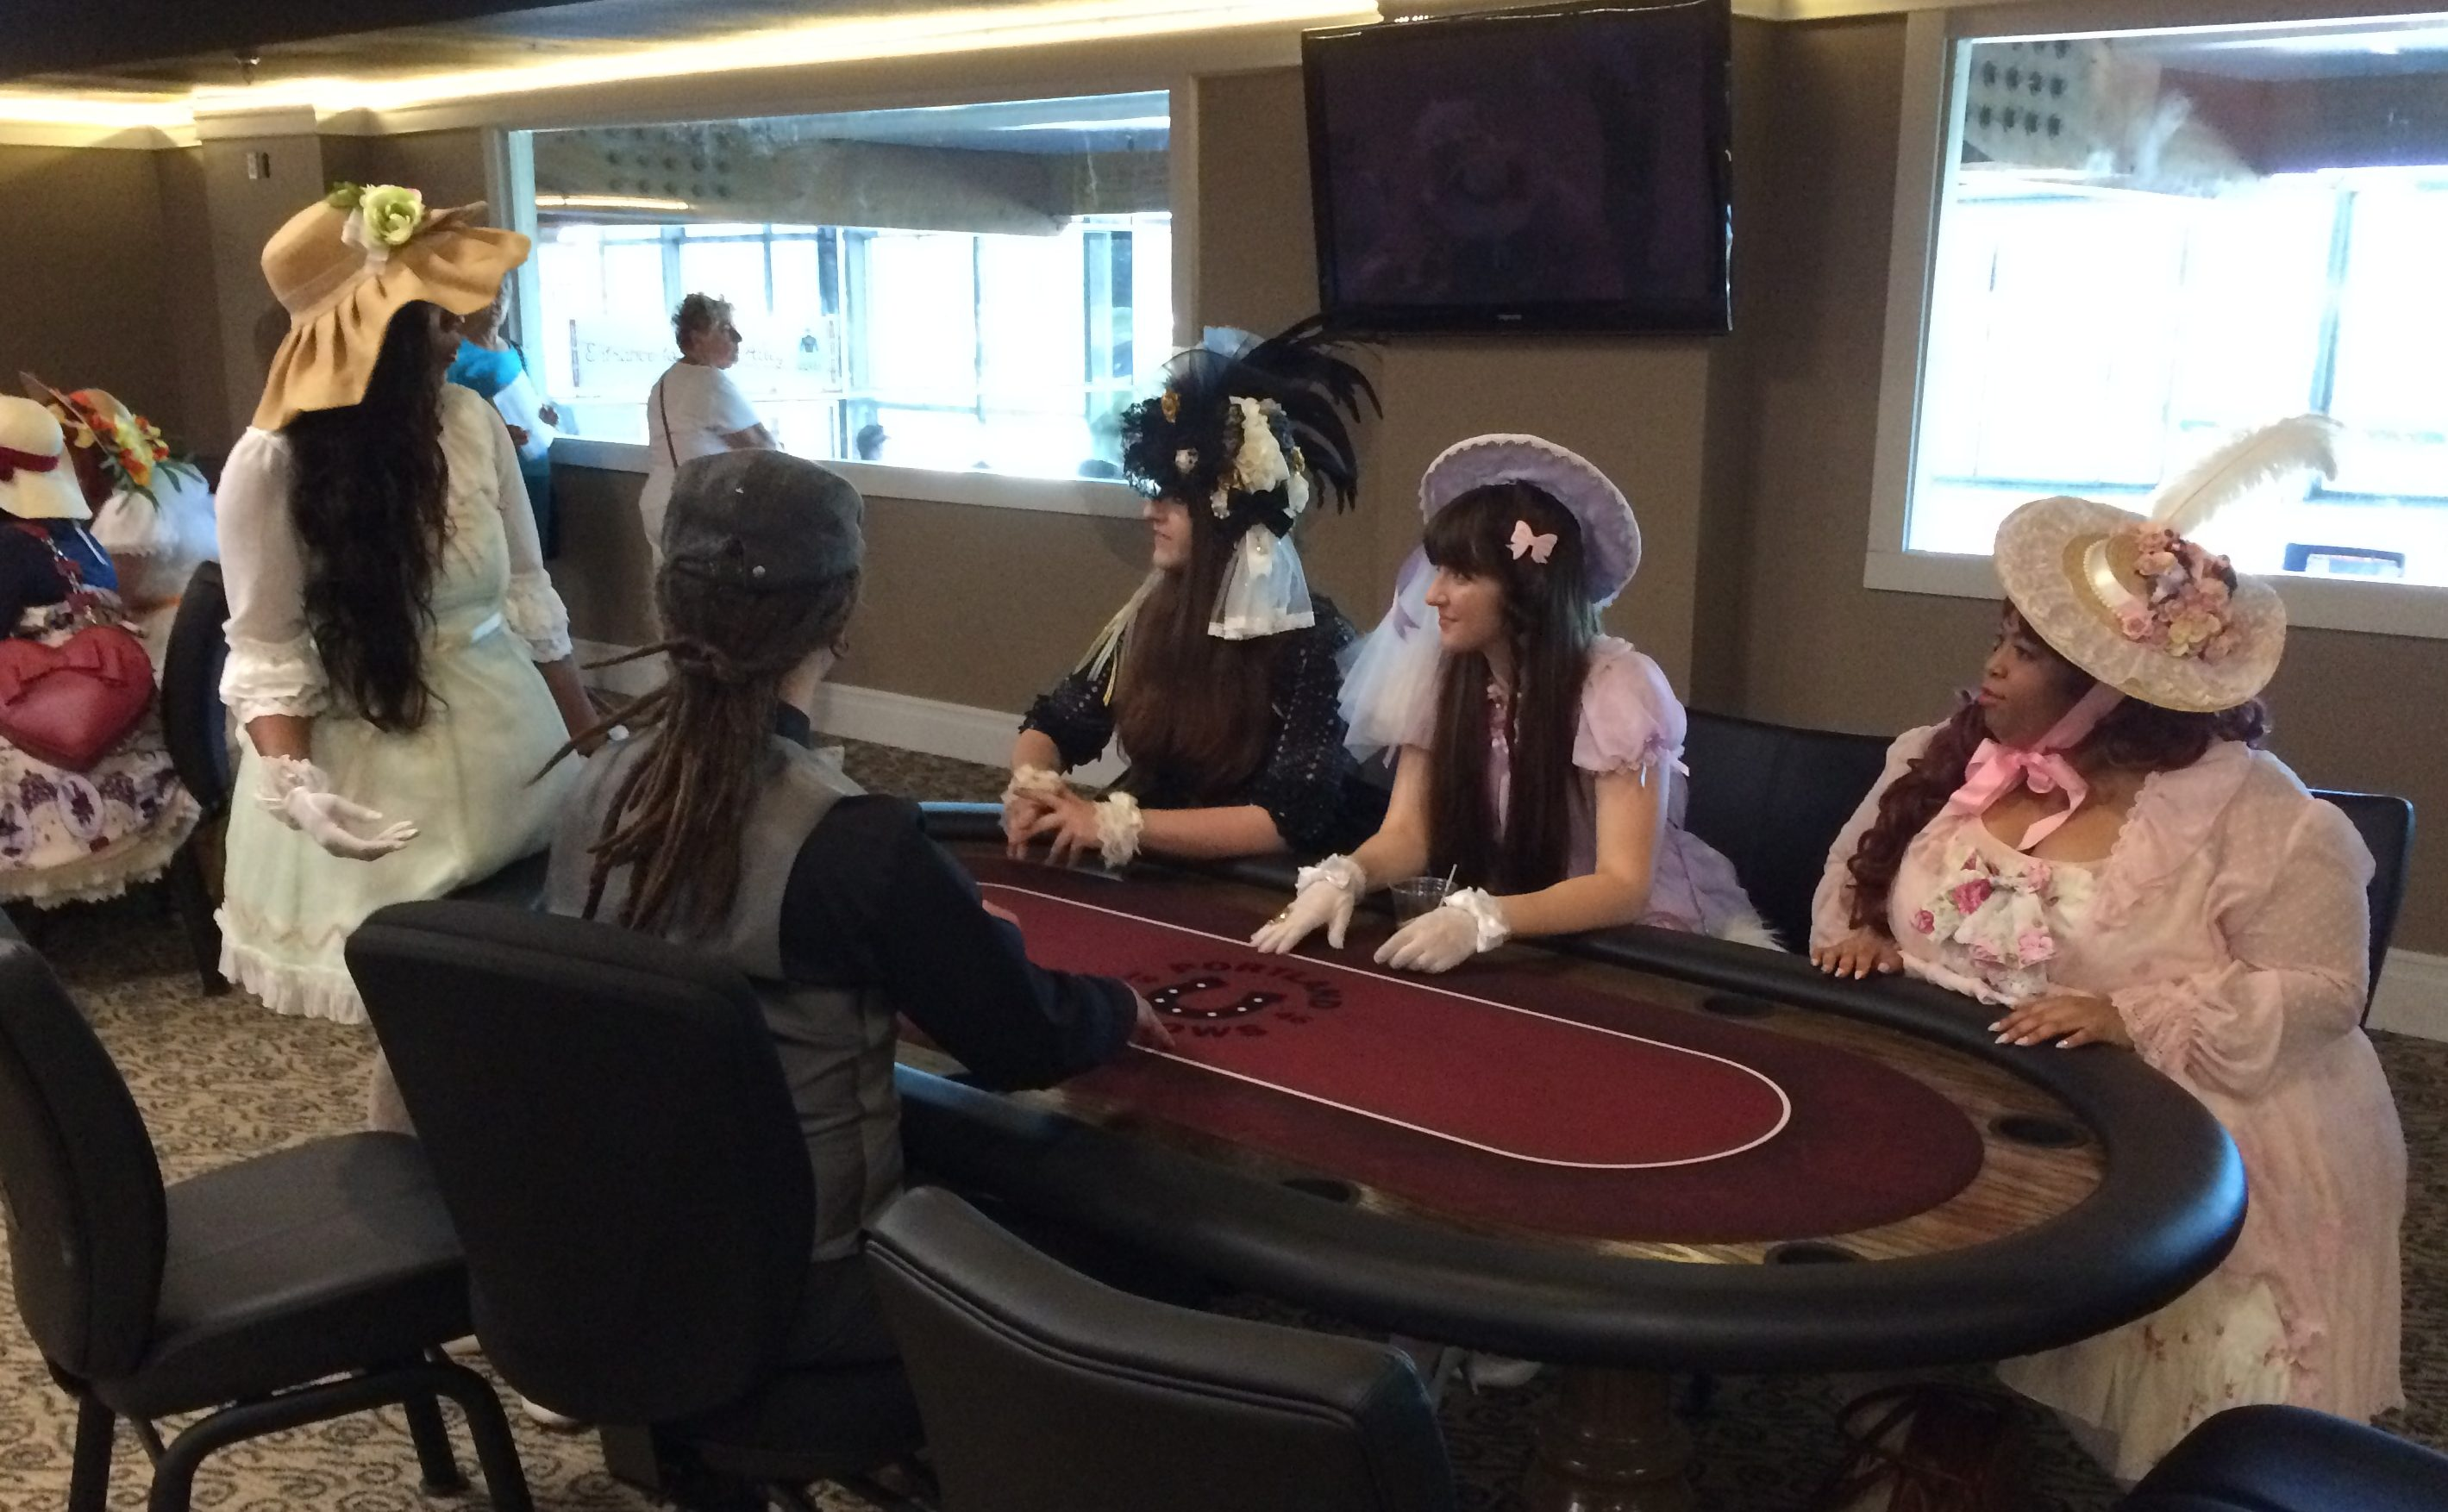 Aces poker room portland aria resort and casino las vegas wedding